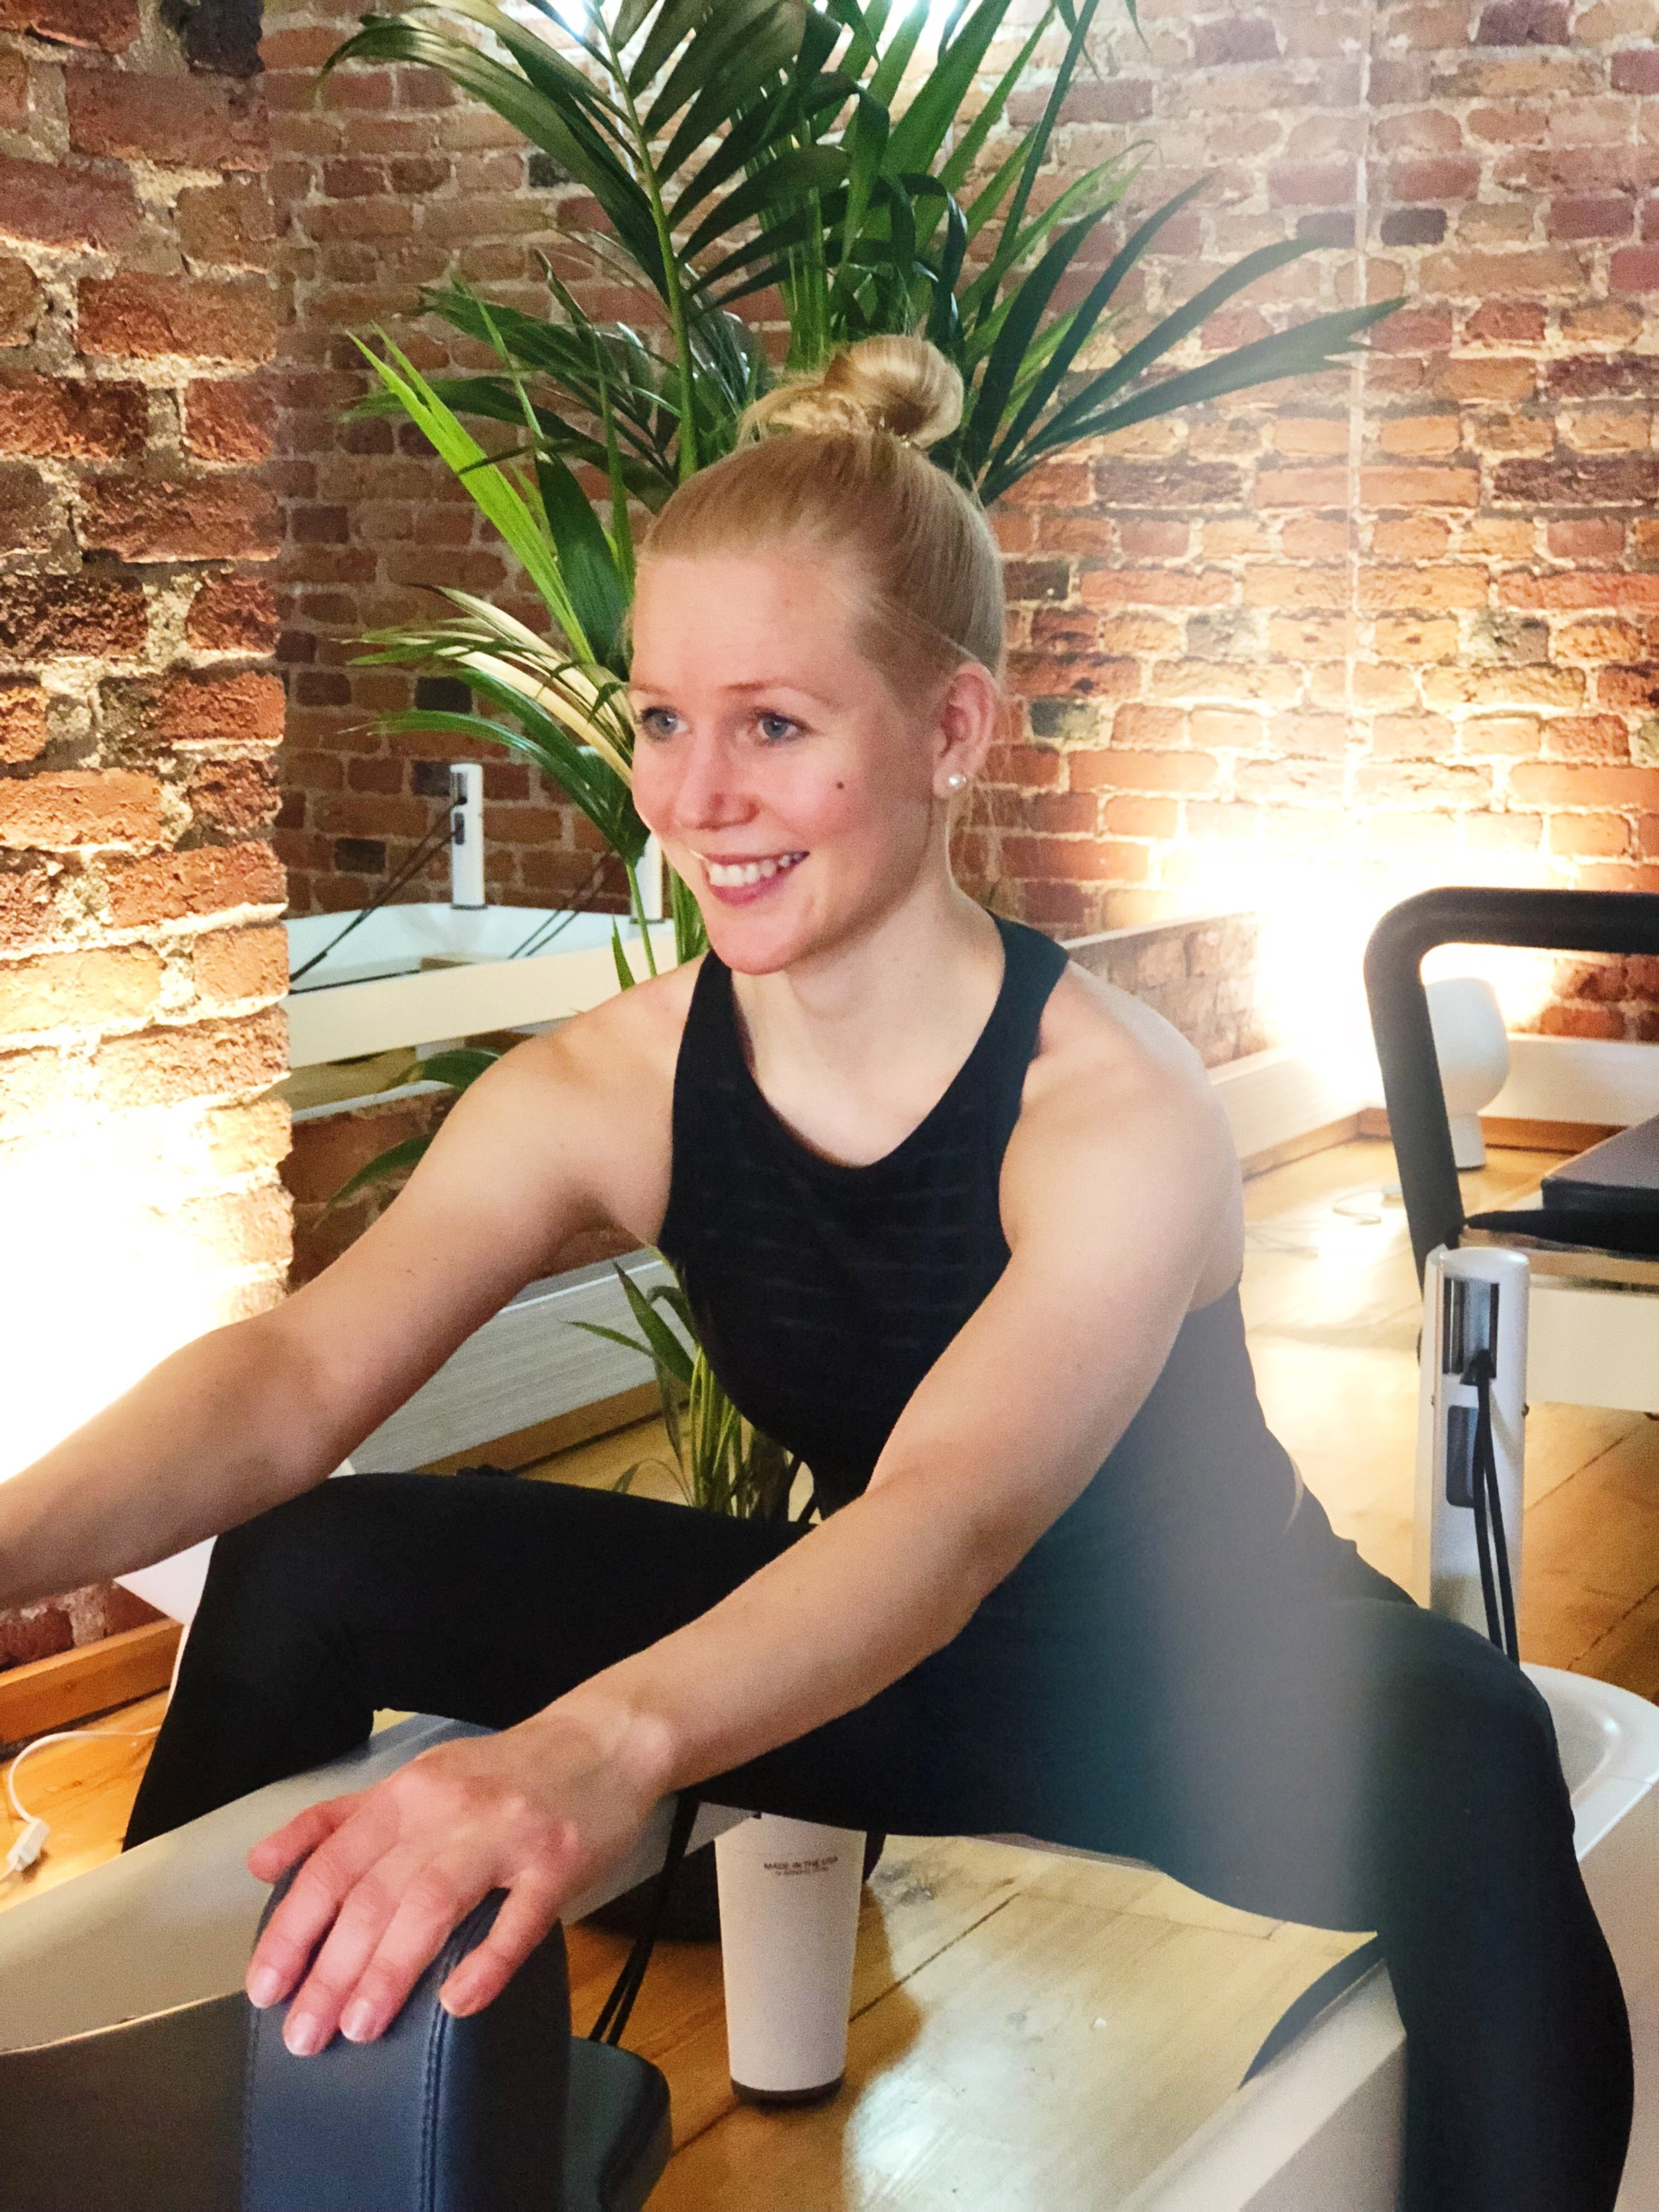 Emma, Pilates - Kind but precise, gentle but rigorous and oh so intense! Come under Emma's lens to experience a transformative and insightful hour by learning more about the countless connections in your body and by raising awareness through movement.Instagram: @emmukristiina